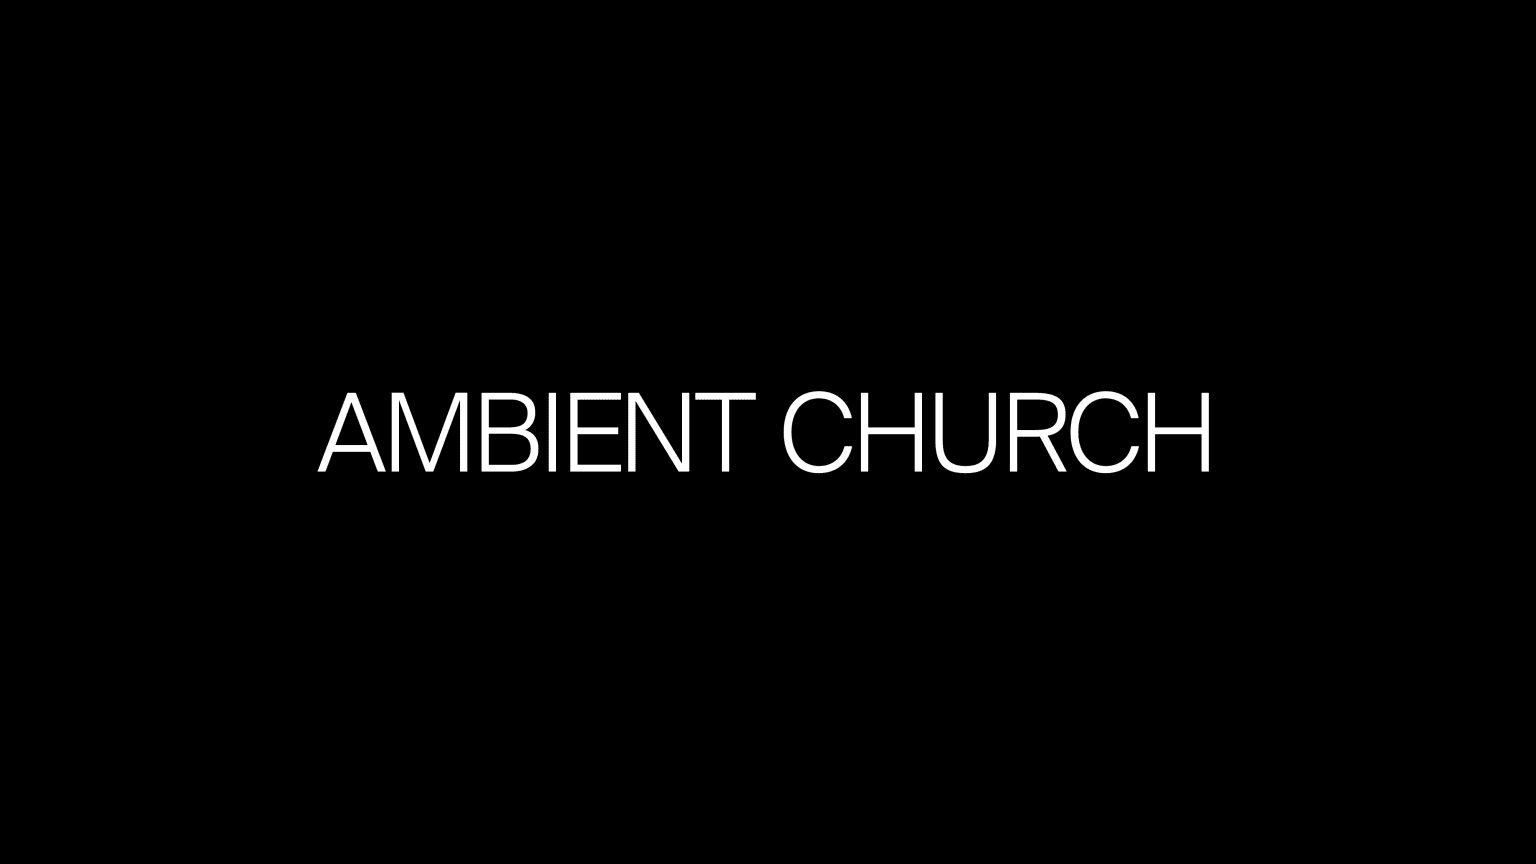 Ambient Church